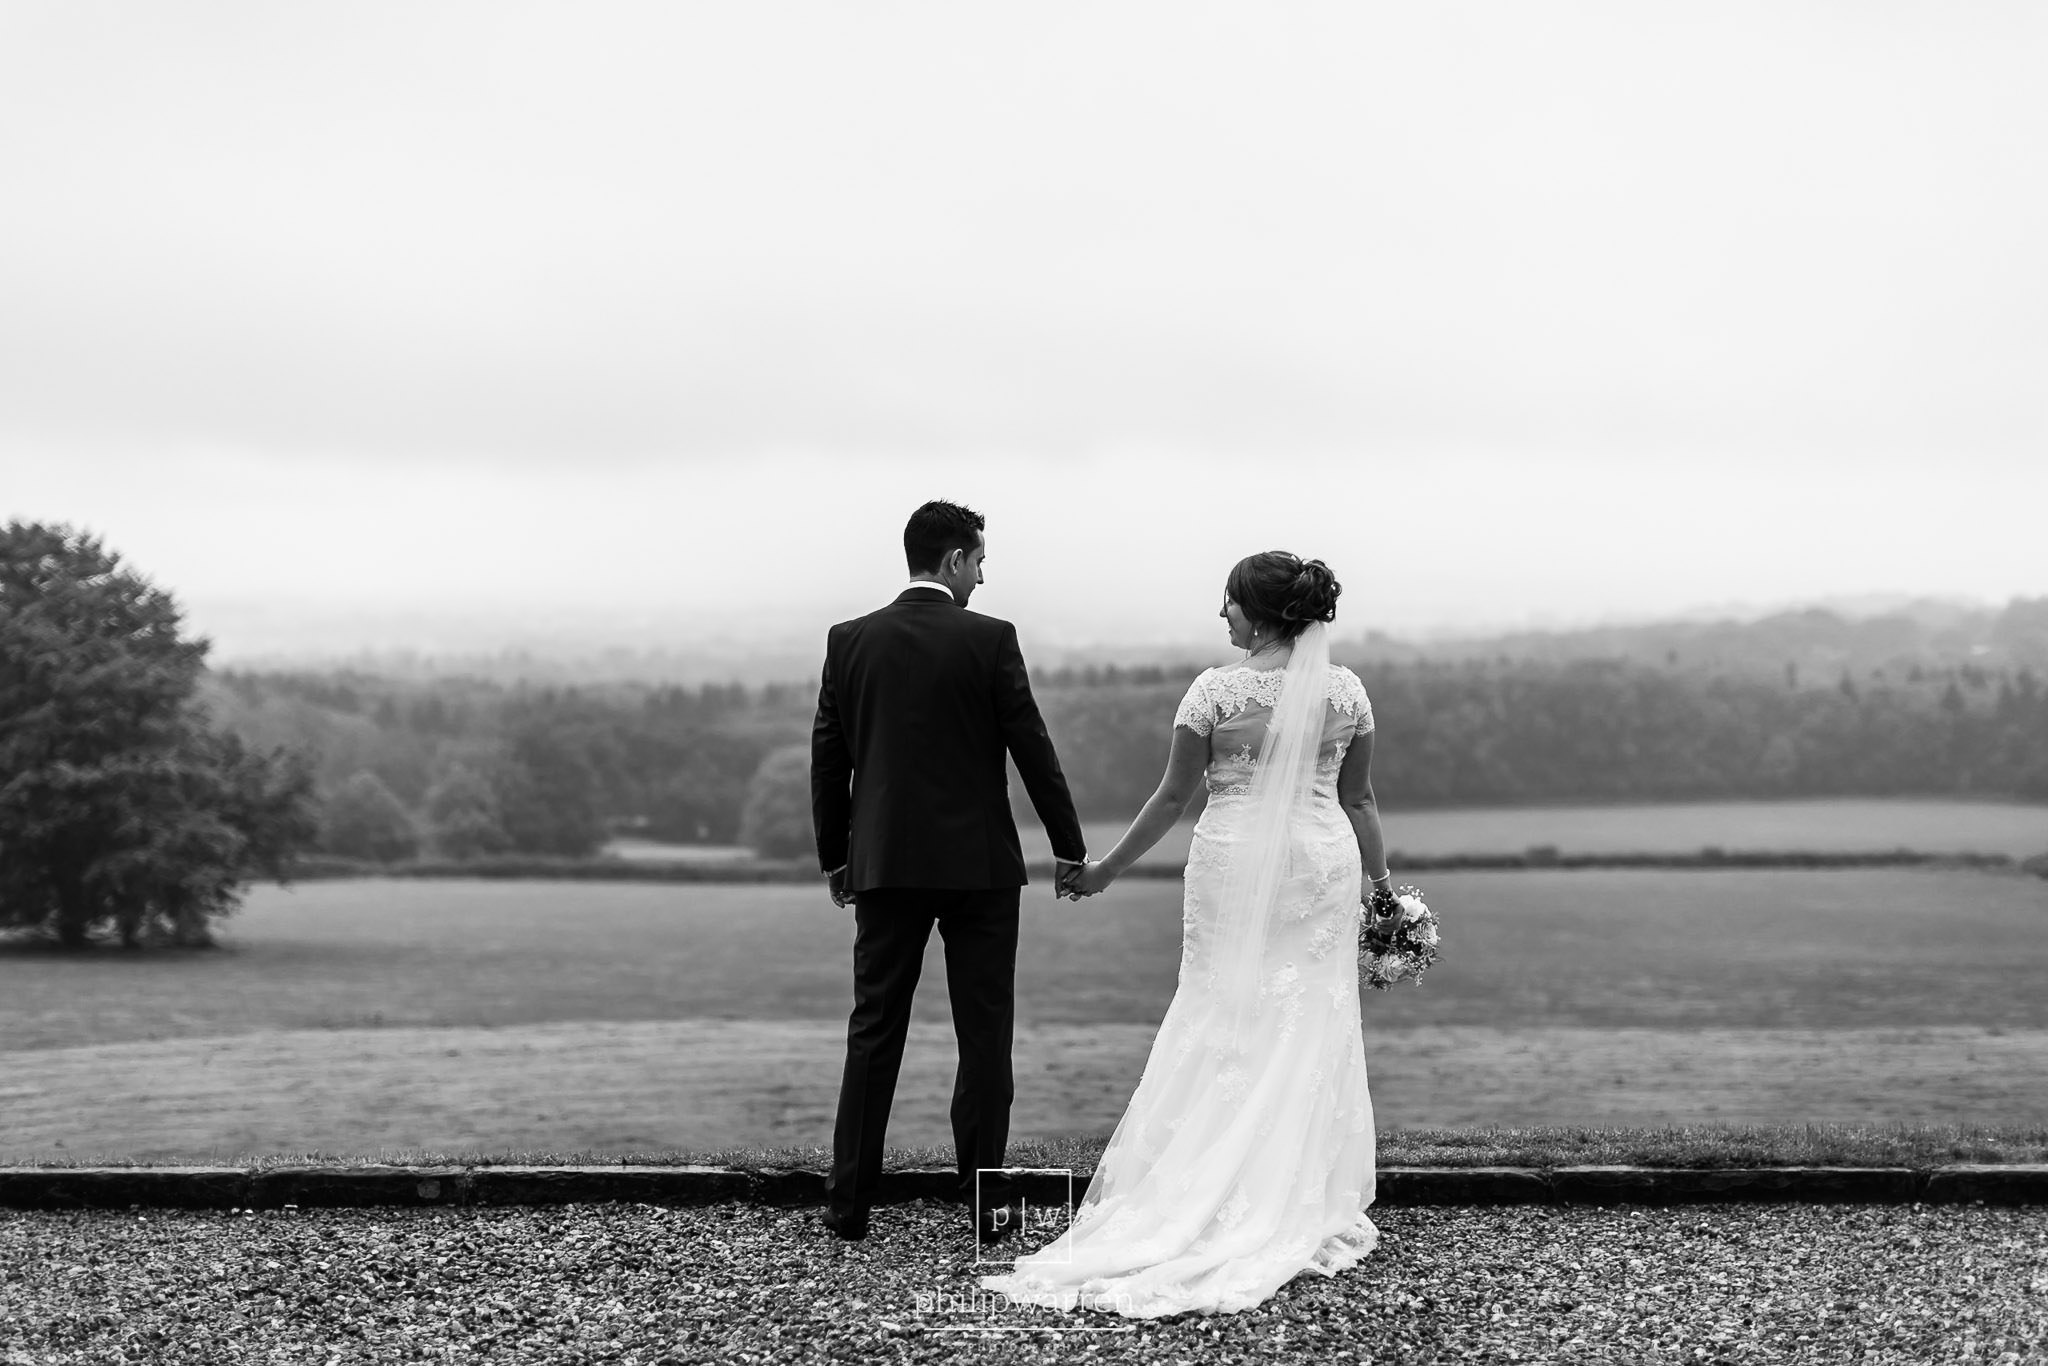 wedding photos over looking cardiff at new house hotel